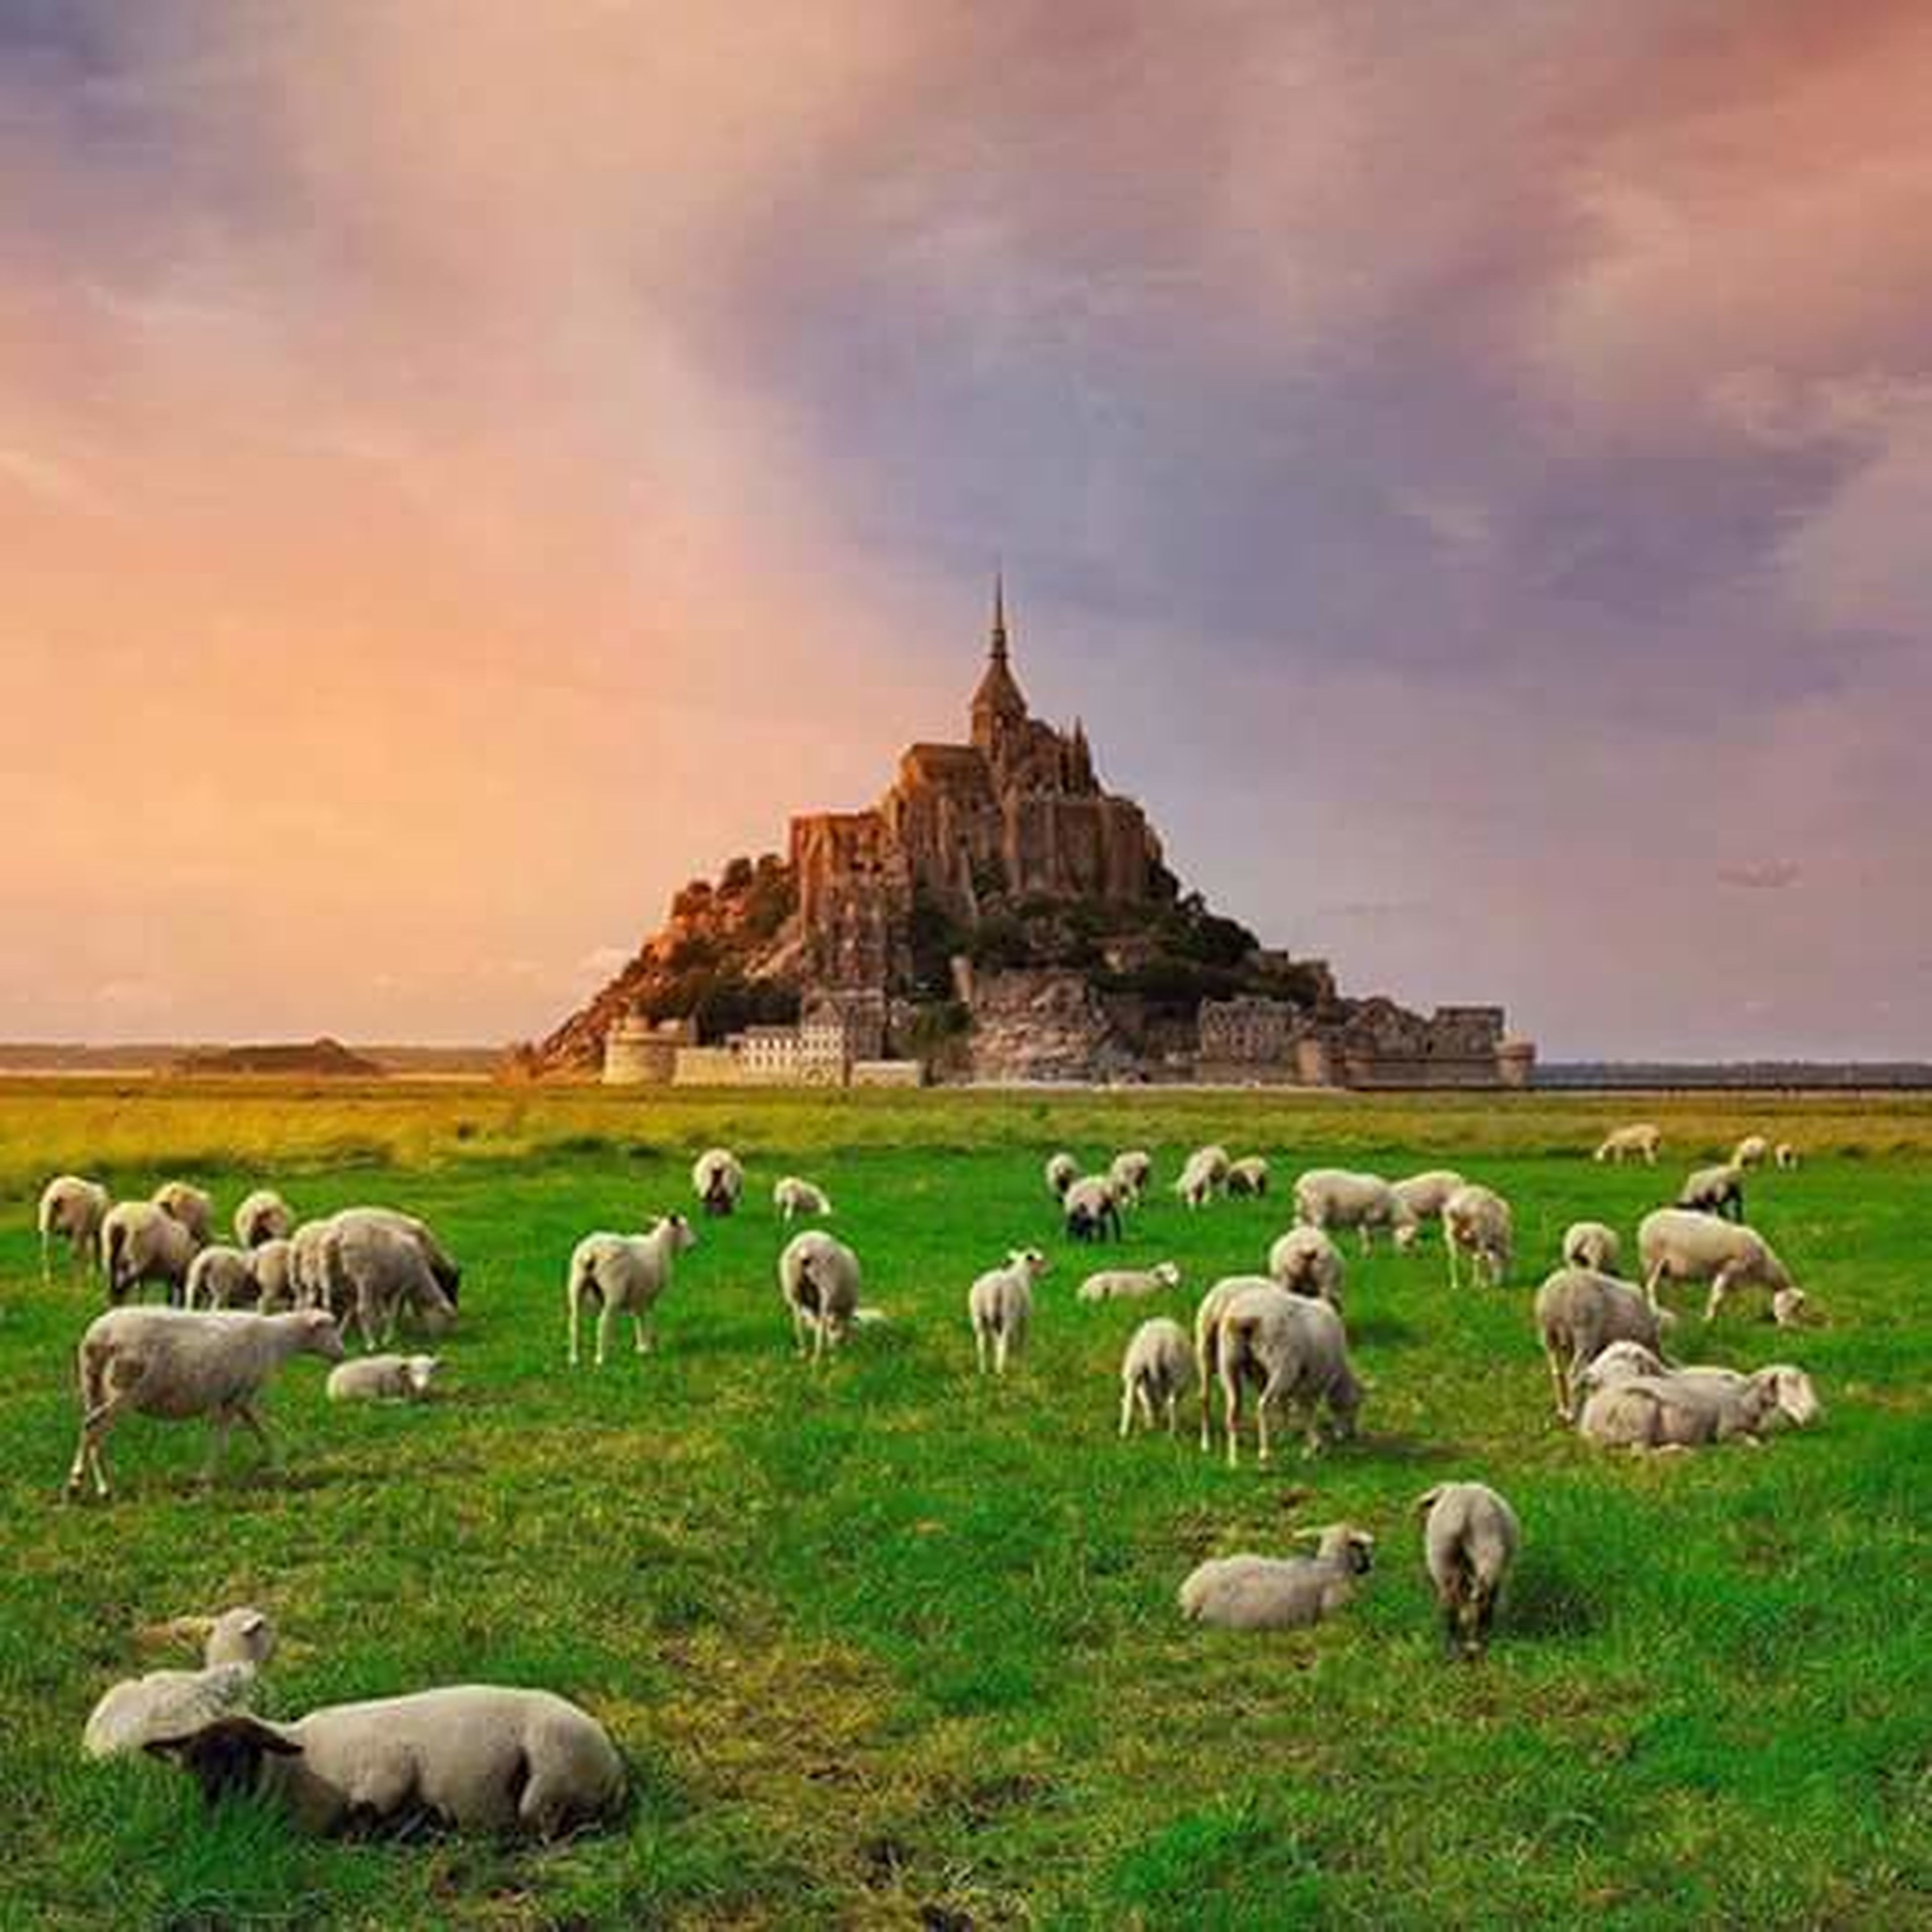 animal themes, sky, grass, cloud - sky, sheep, field, nature, built structure, landscape, wildlife, cloud, medium group of animals, building exterior, bird, outdoors, animals in the wild, no people, architecture, day